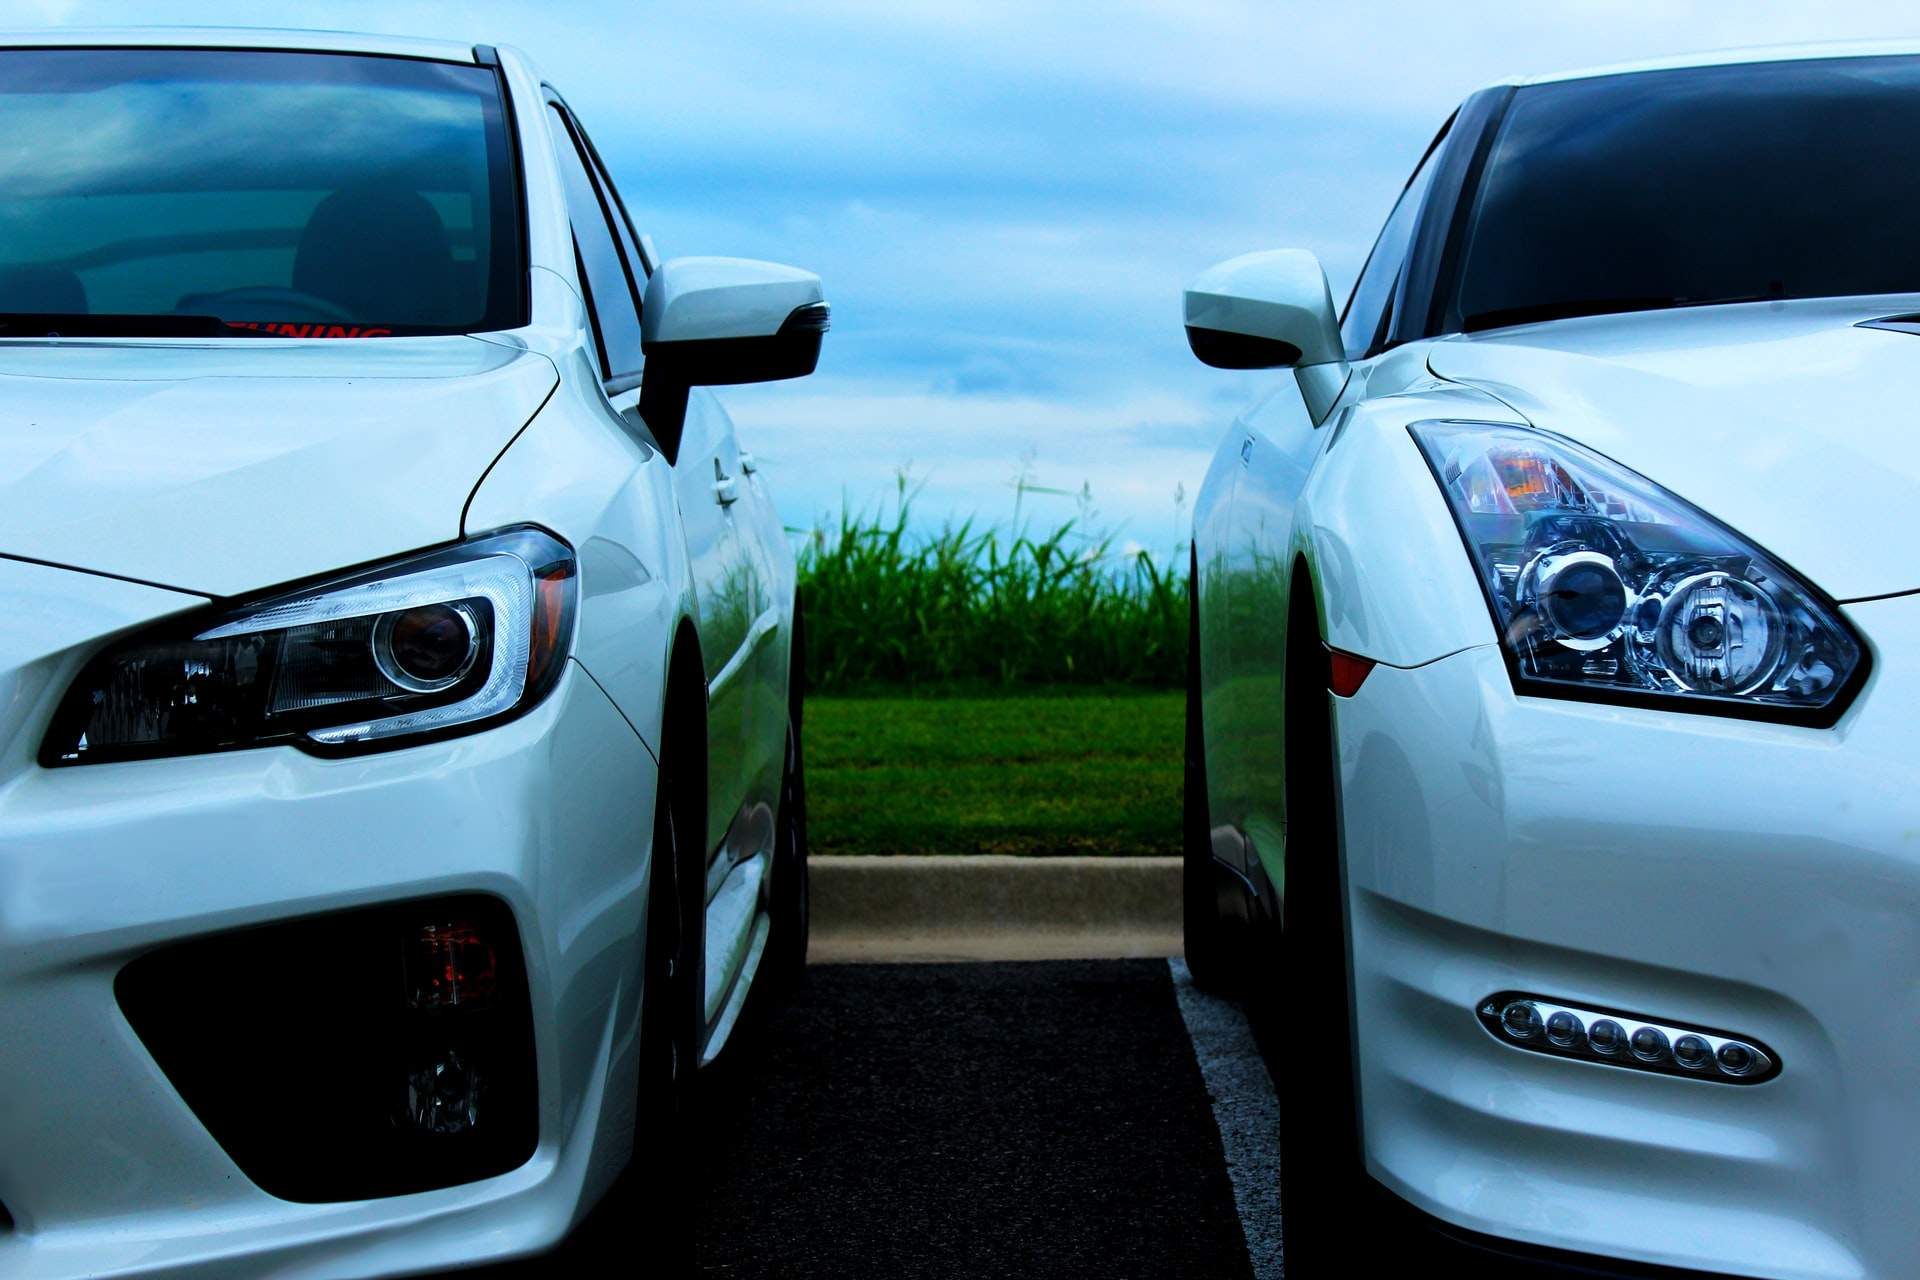 Two white cars parked next to each other